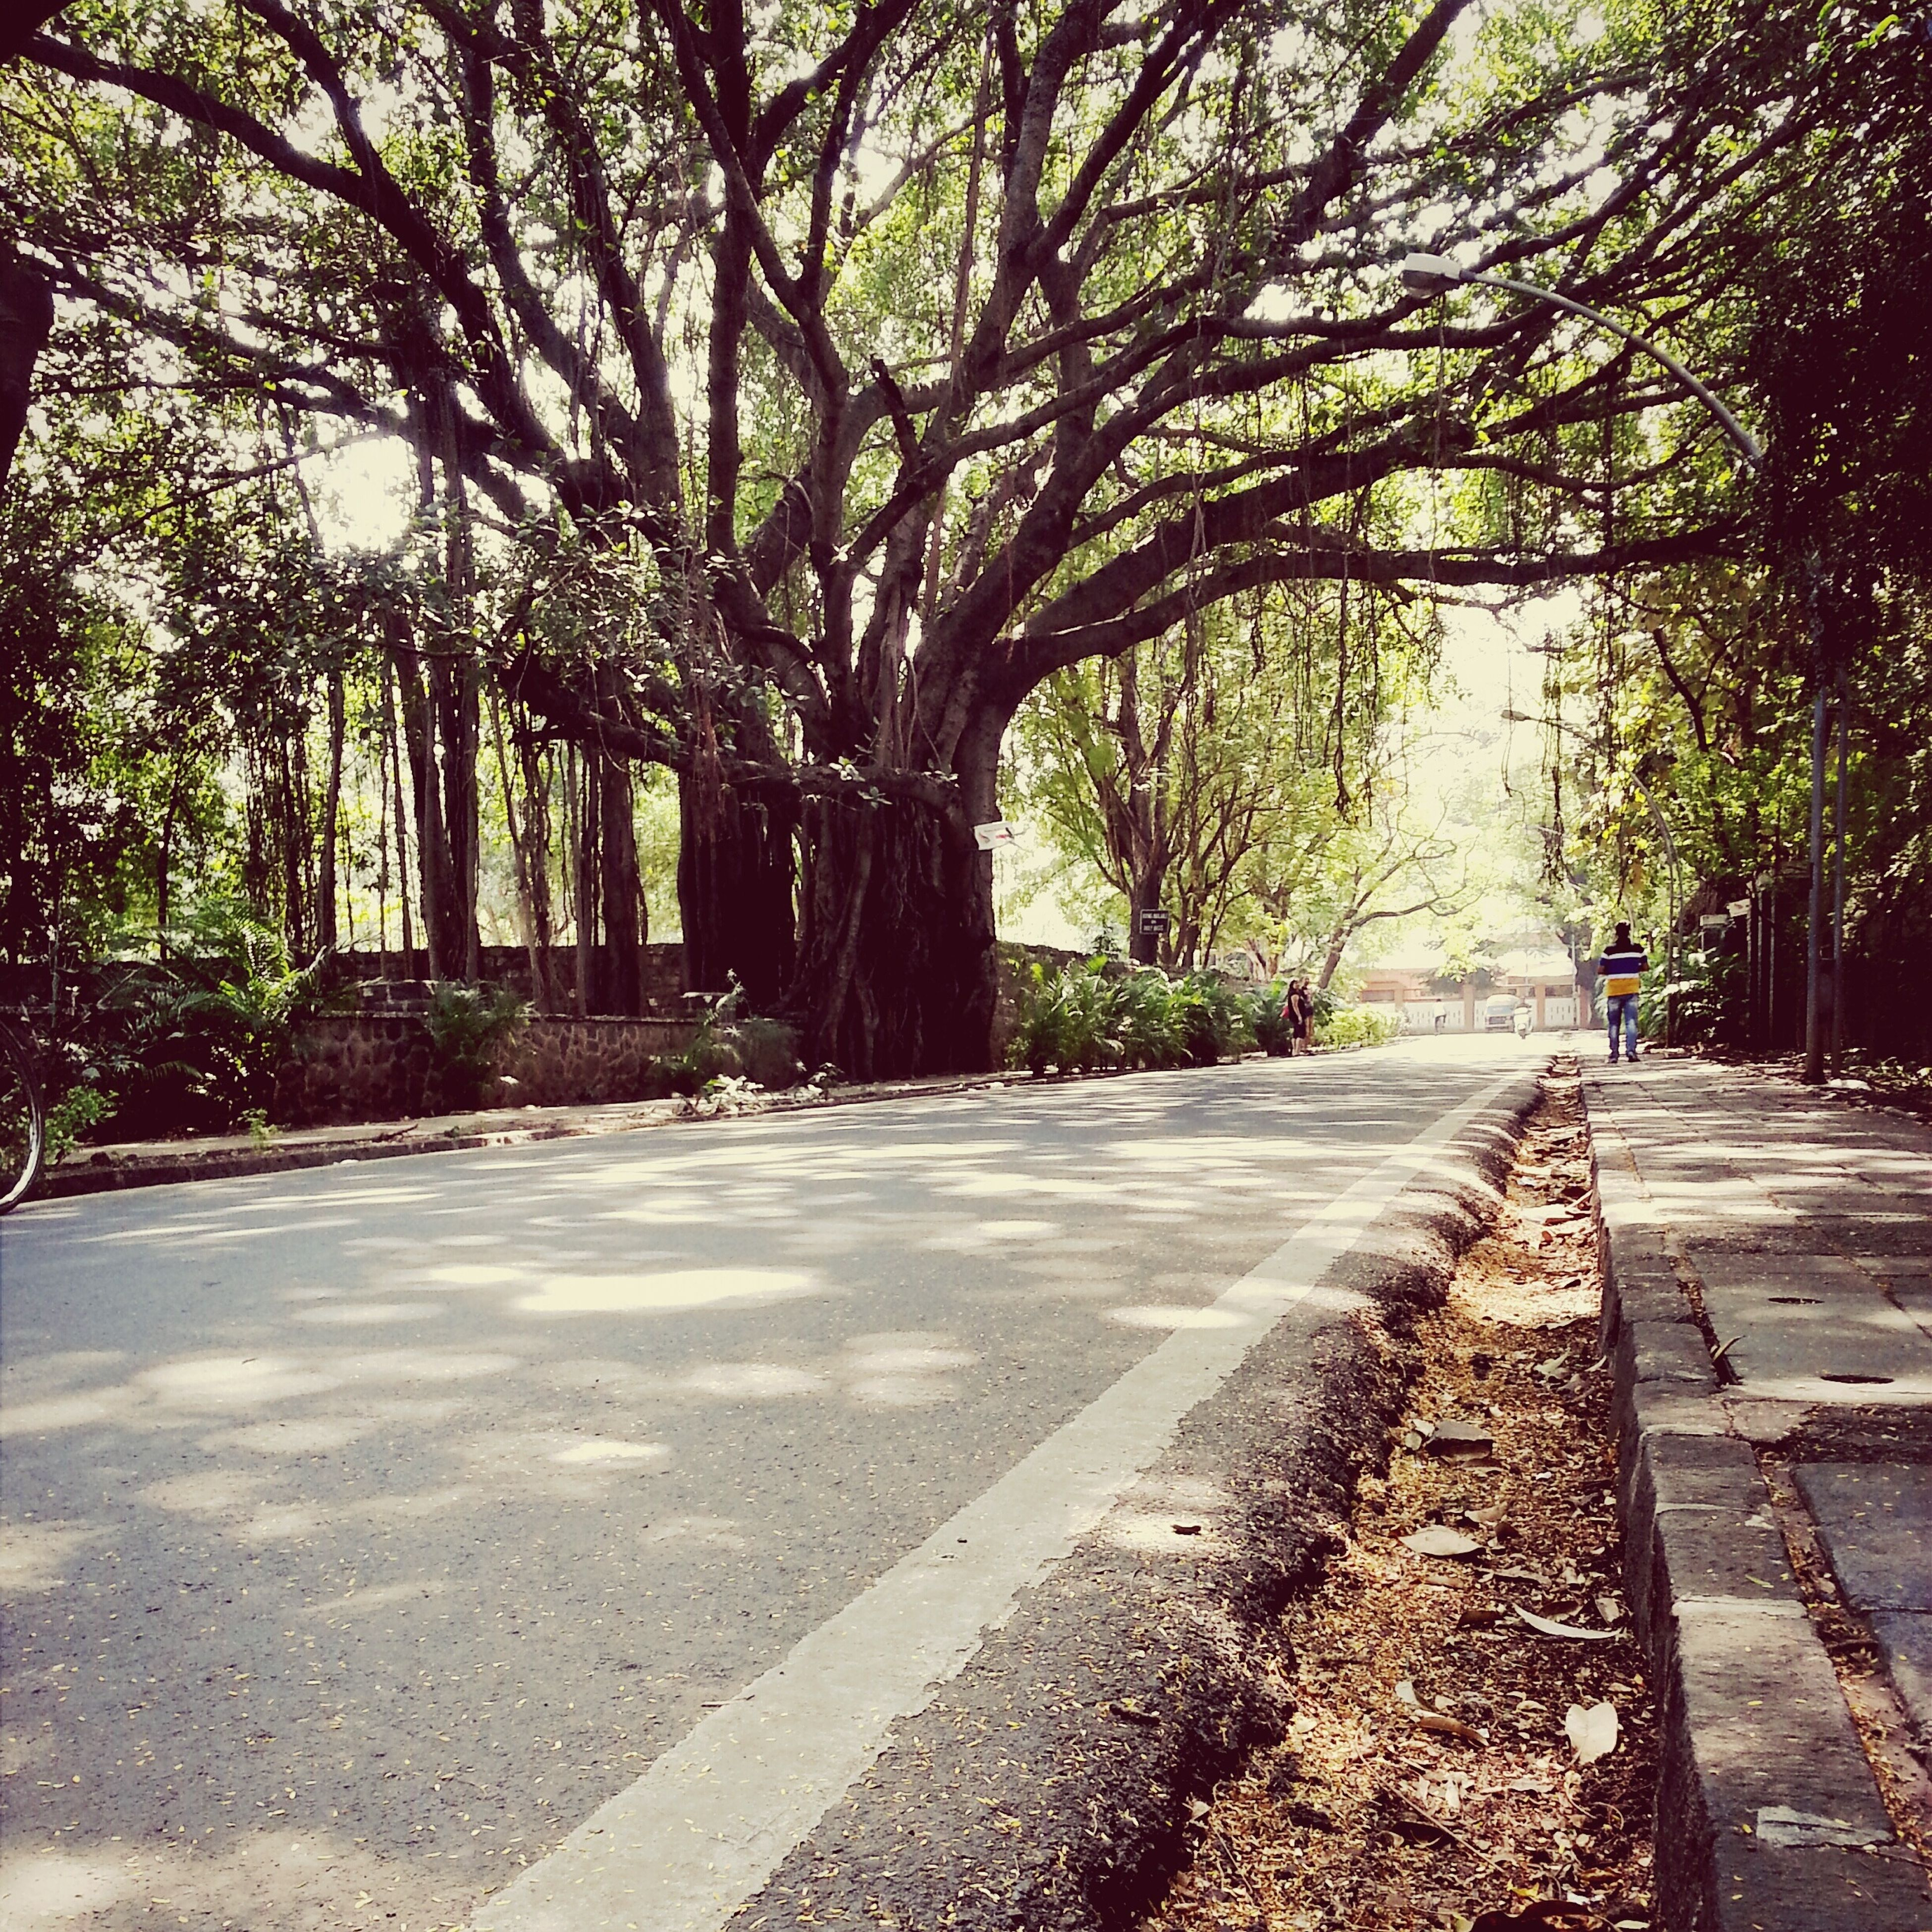 tree, the way forward, road, tree trunk, footpath, growth, tranquility, street, nature, transportation, branch, shadow, sunlight, park - man made space, tranquil scene, diminishing perspective, treelined, day, outdoors, empty road